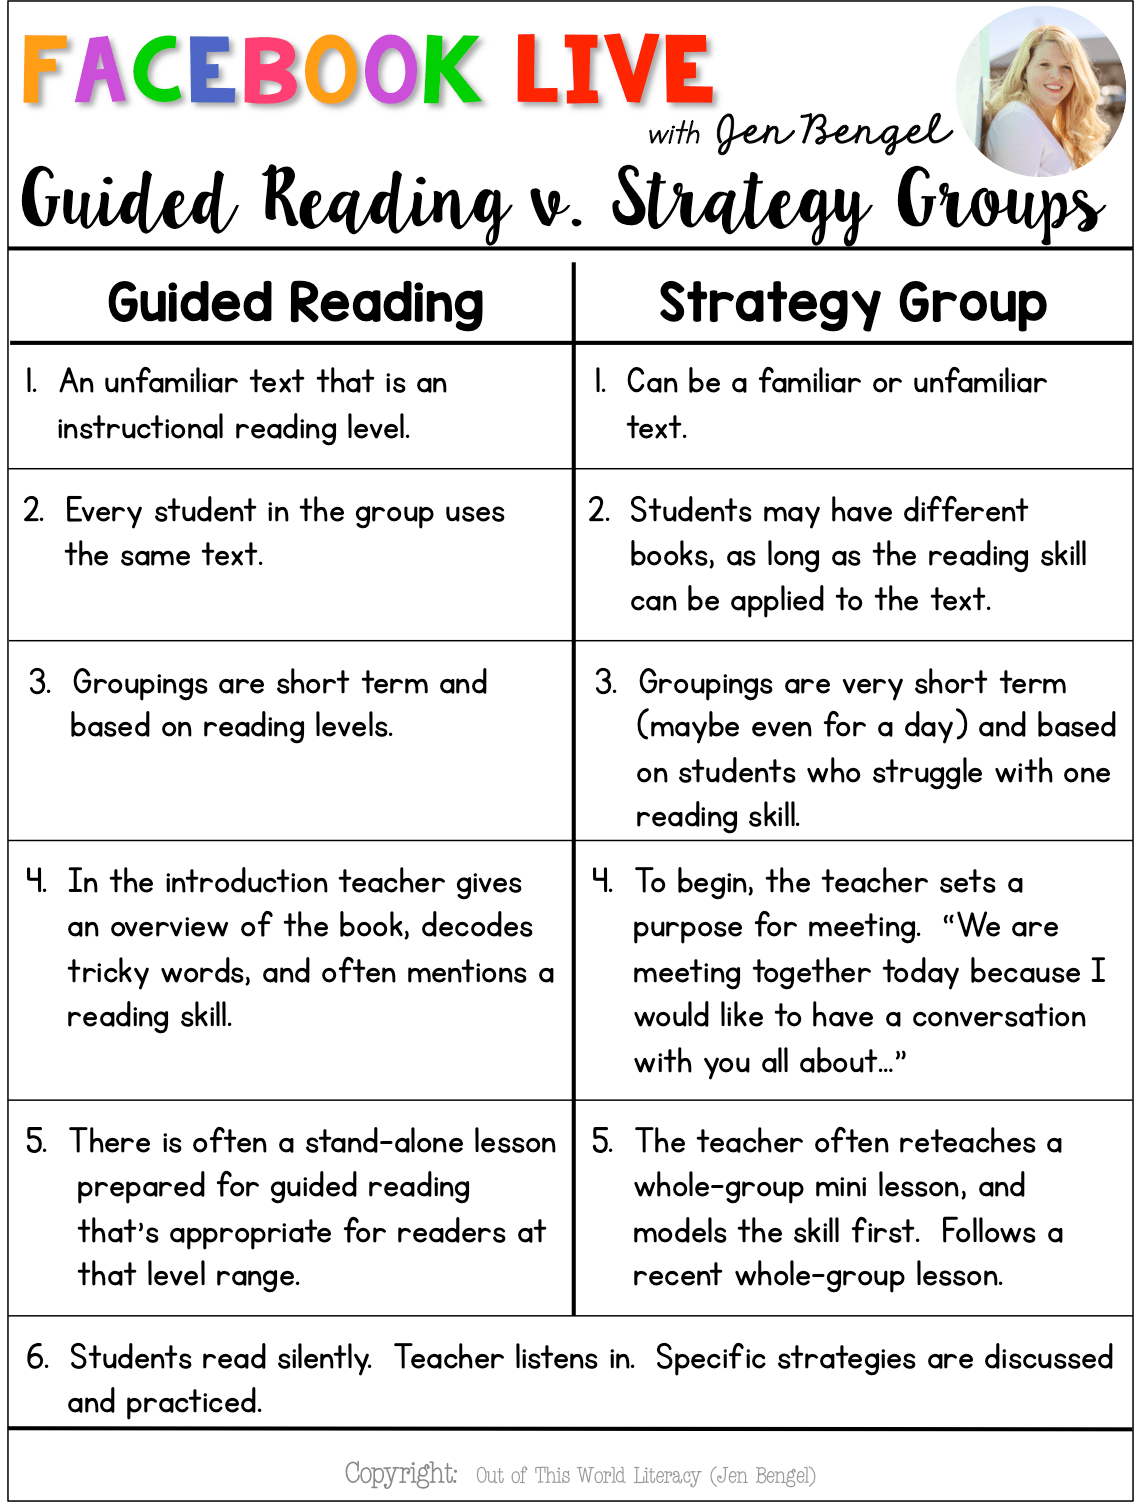 Guided Reading V Strategy Groups Out Of This Word Literacy Guided Reading Guided Reading Lessons Strategy Groups Reading